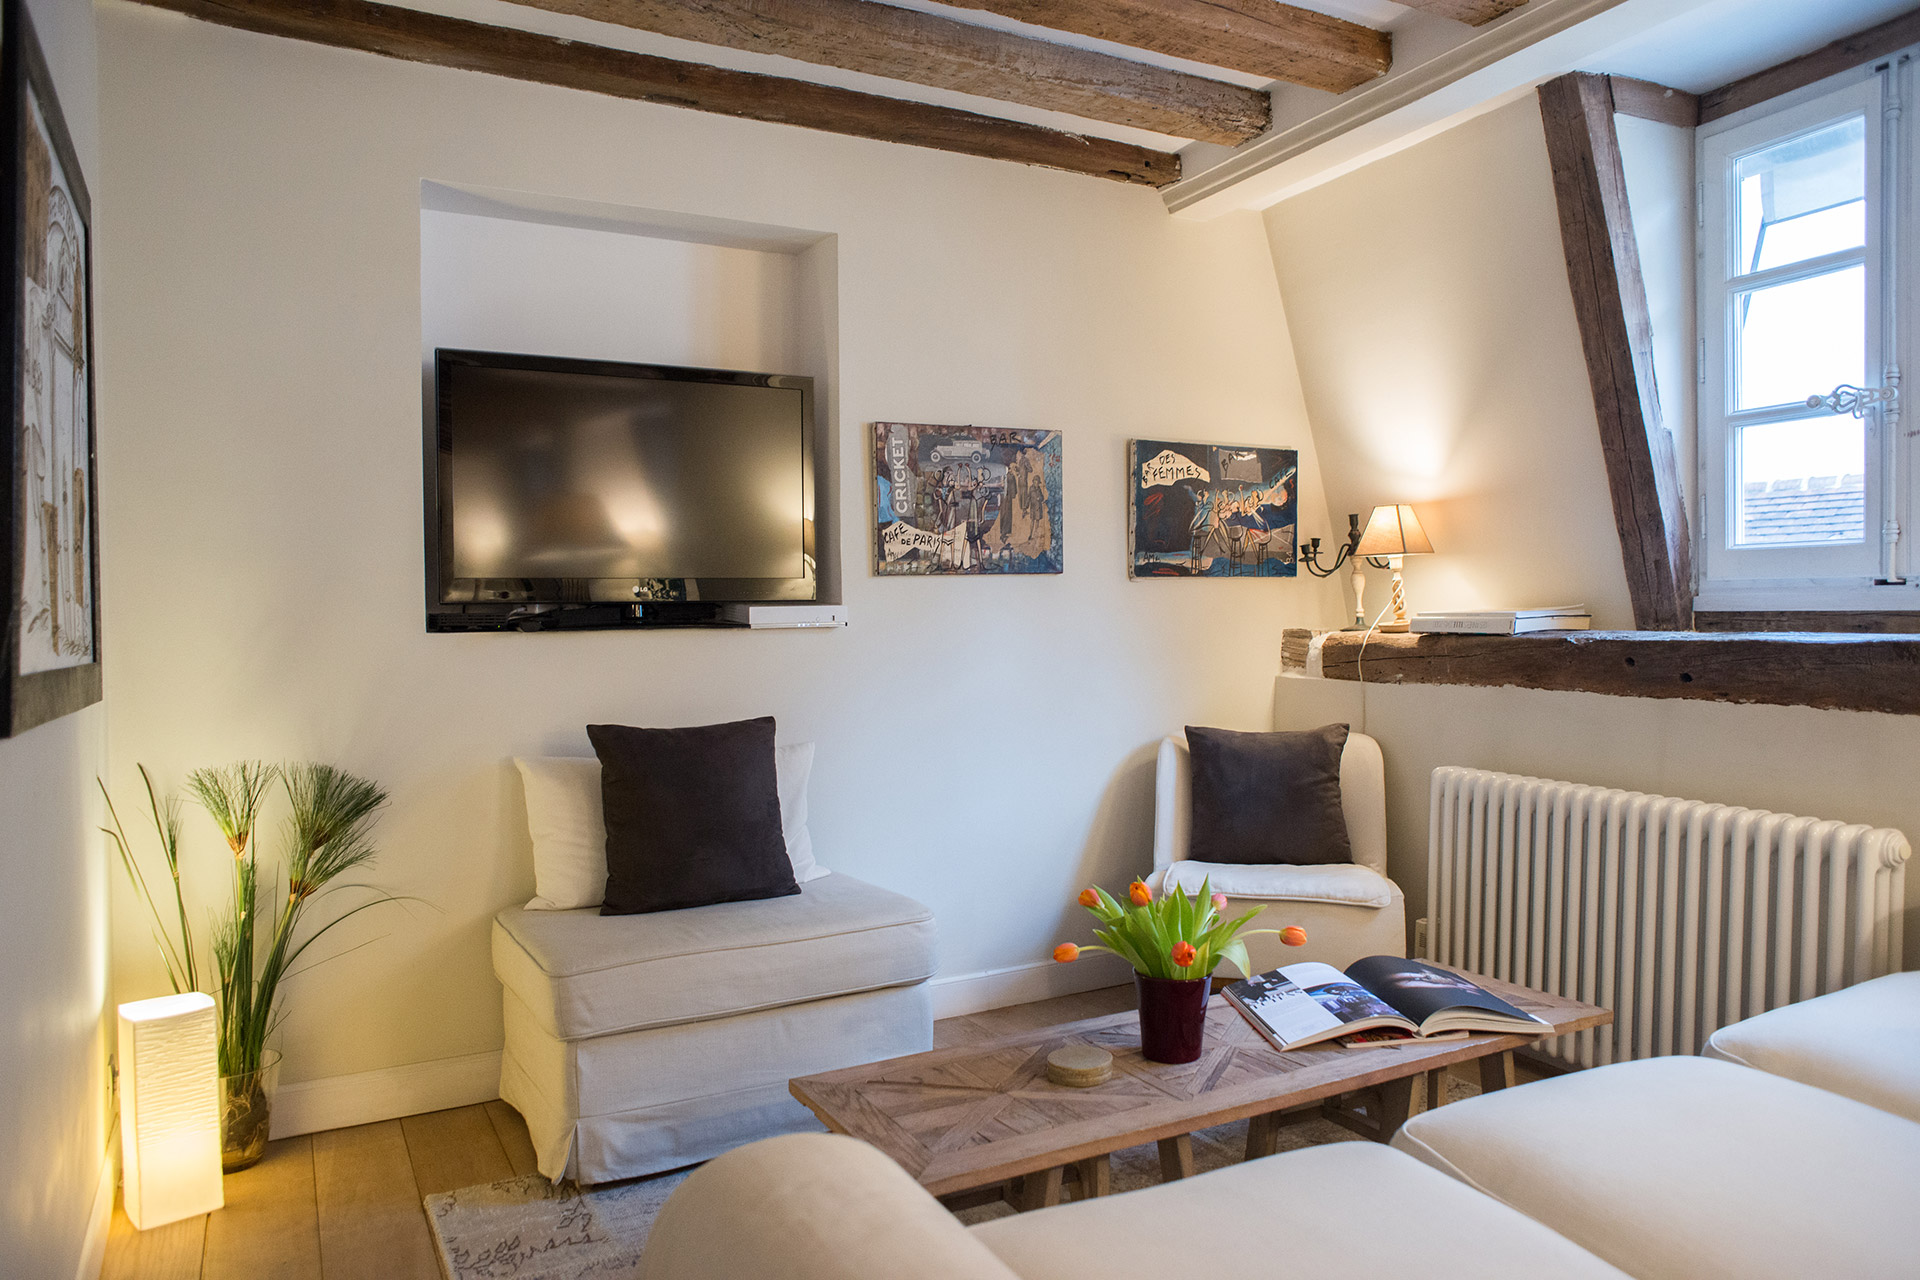 A flatscreen TV, DVD player, and free wifi in the Brittany vacation rental offered by Paris Perfect